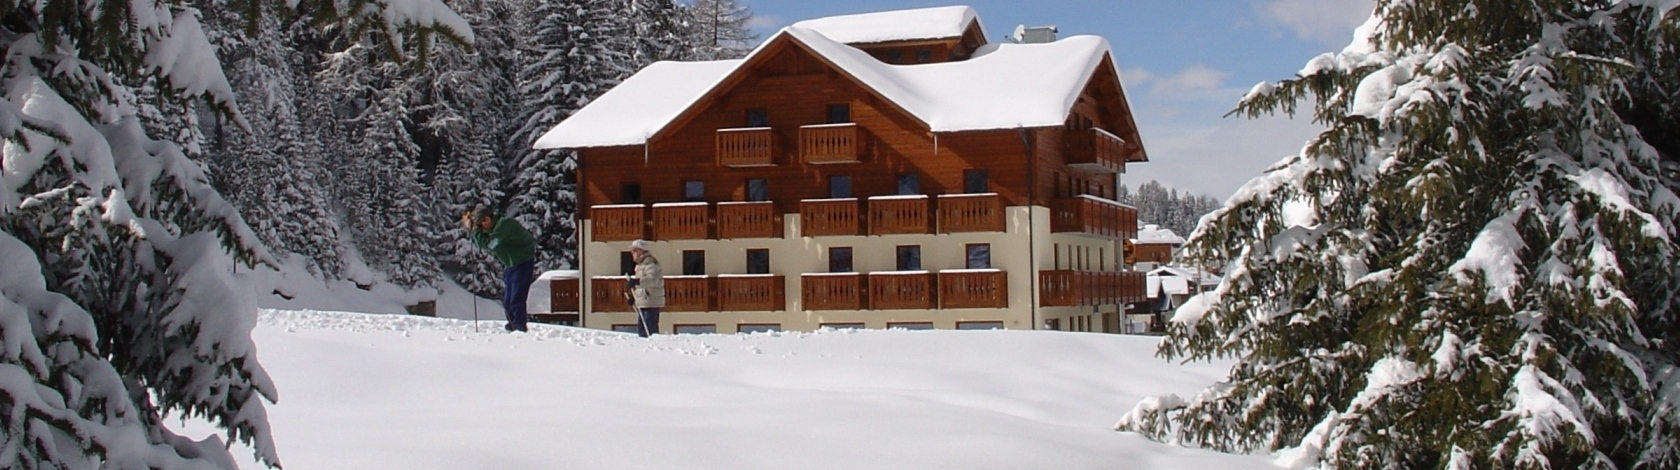 Hotel Cevedale inverno